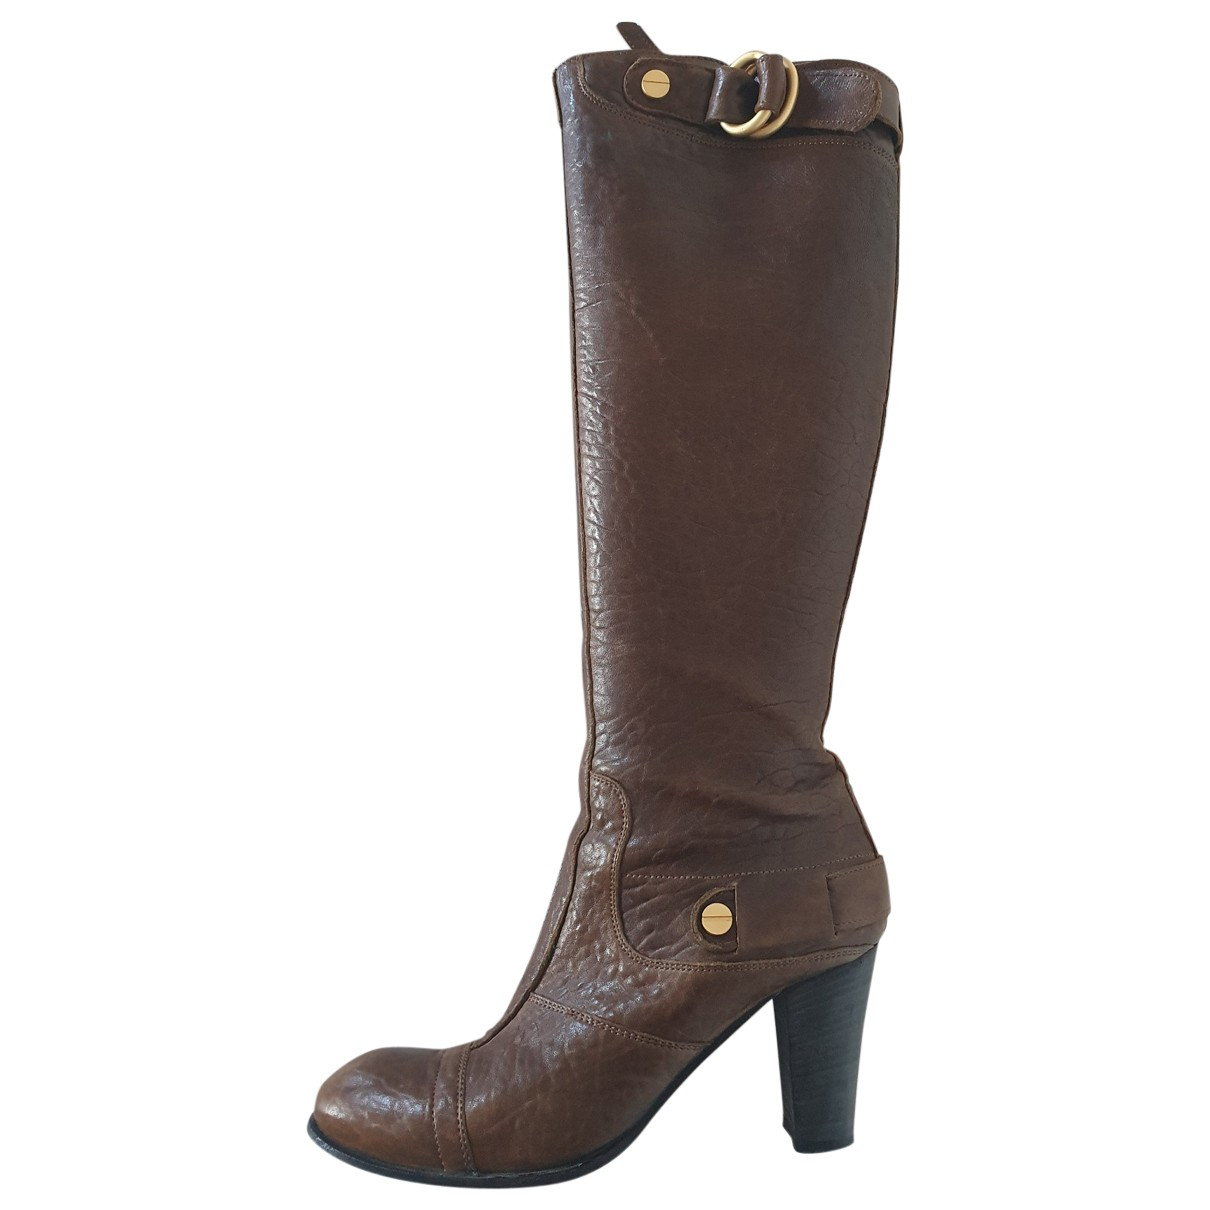 Hugo Boss \N Brown Leather Boots for Women 37 EU